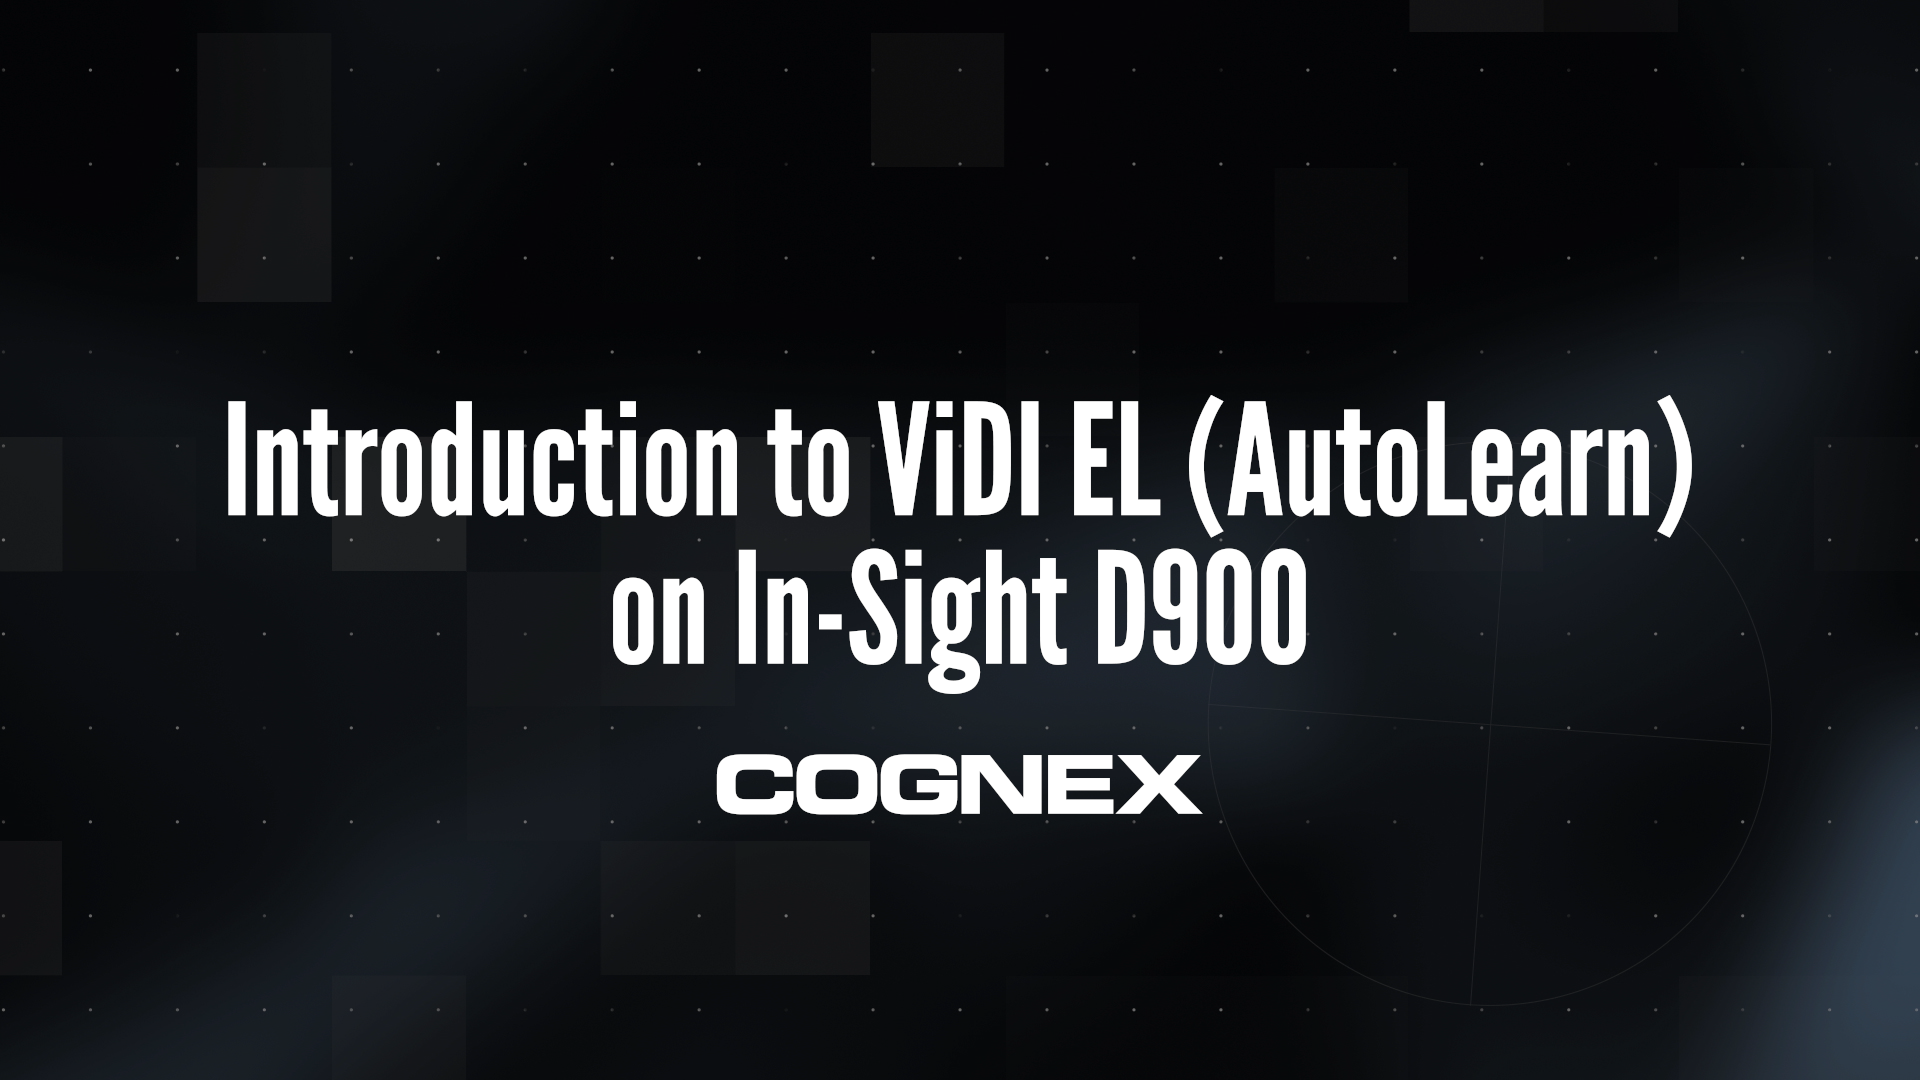 Introduction to ViDi EL (AutoLearn) on In-Sight D900